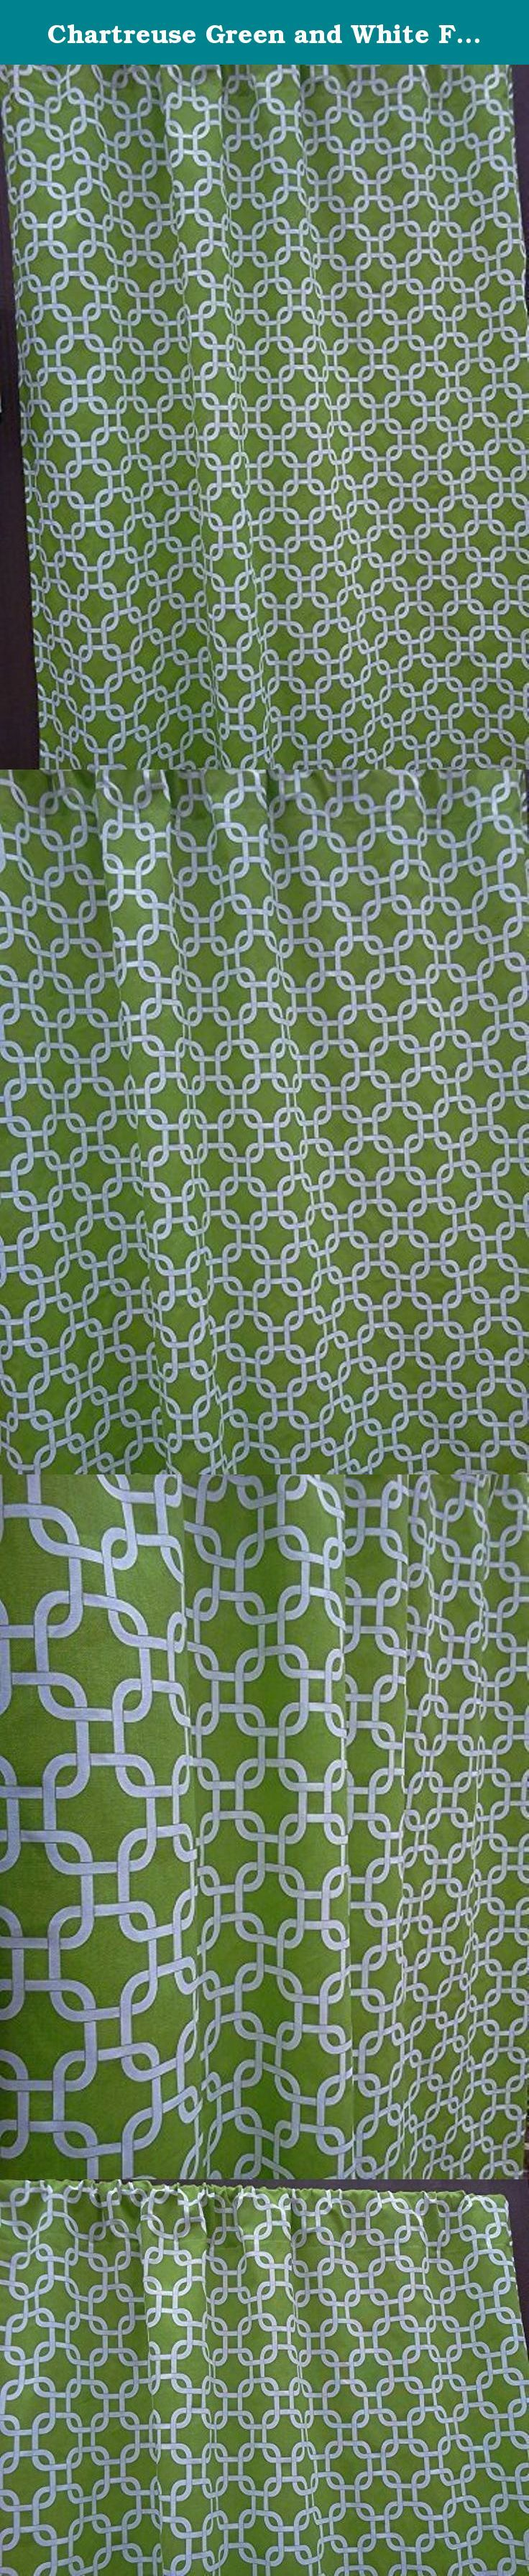 "Chartreuse Green and White Full Length Curtains Interlocking Squares 84 Inches Long and 52 Inches Wide Set of Two. Chartreuse Green and White Full Length Curtains, Two 84"" Full Length Curtains; 100% quality cotton, Premier Prints home décor weight drapery fabric. Please allow 7-14 days for delivery, as the curtains are handmade after your purchase to keep inventory costs low. Keeping inventory costs low helps keep the price of this item at a reasonable price. The curtain is ~52"" wide and…"